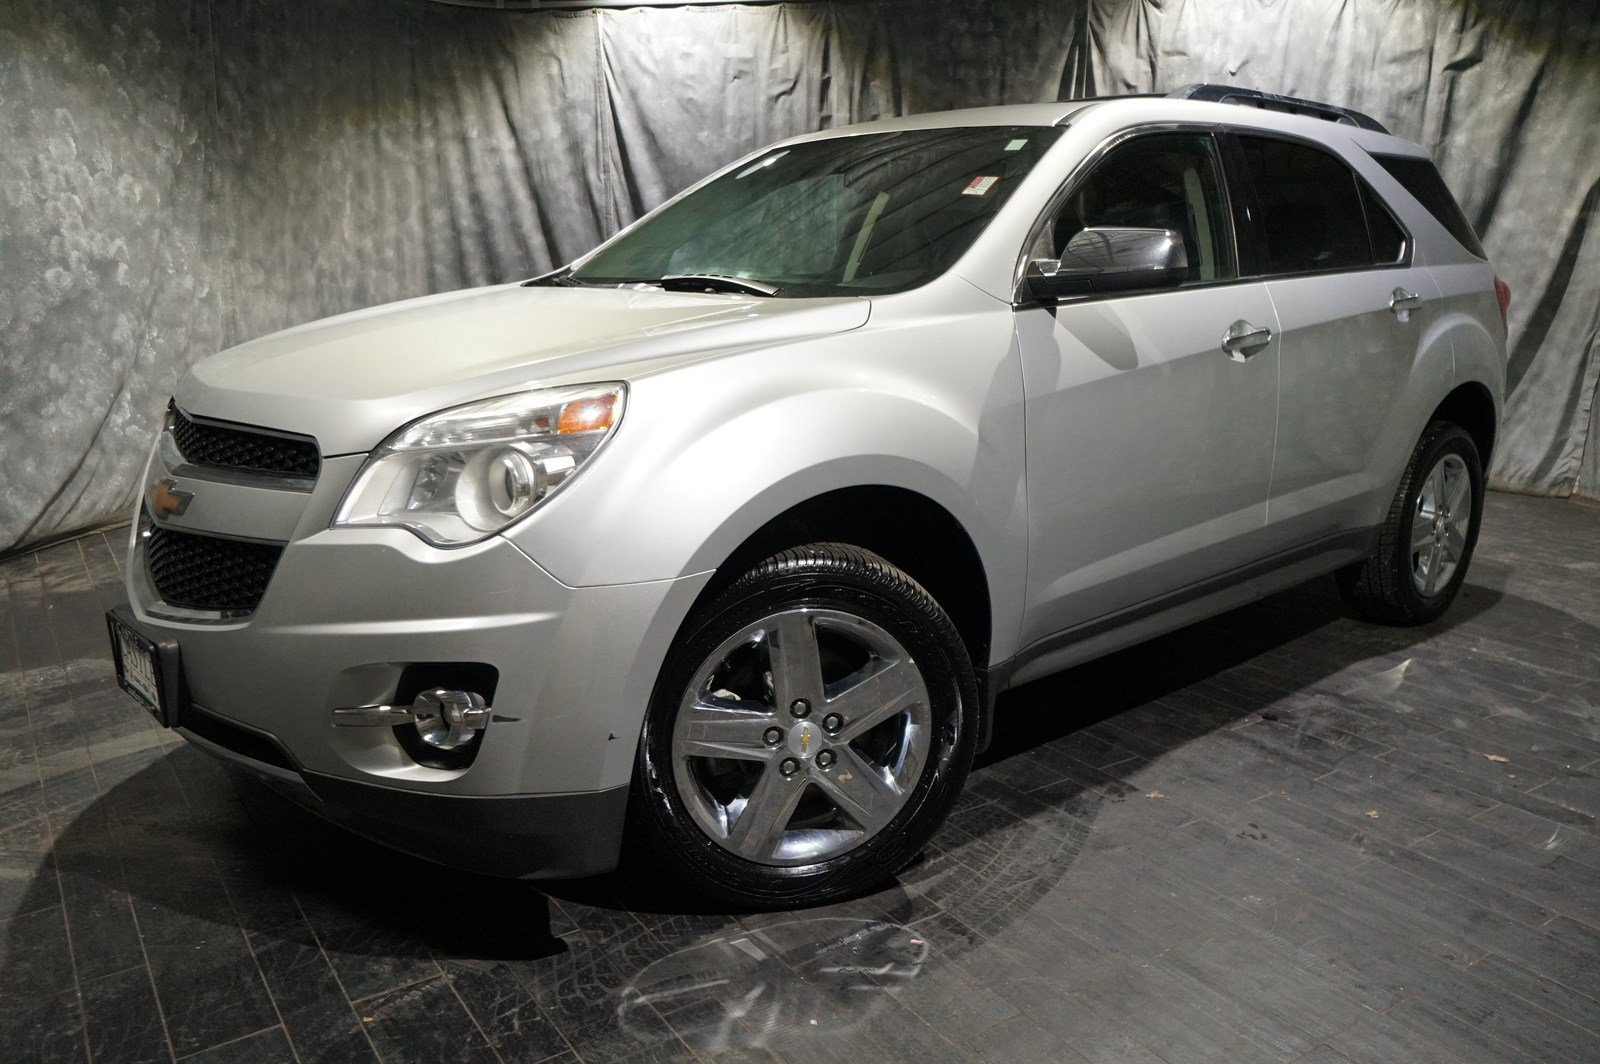 ltz suv suvs fuel interior chevrolet equinox compact design efficient shared